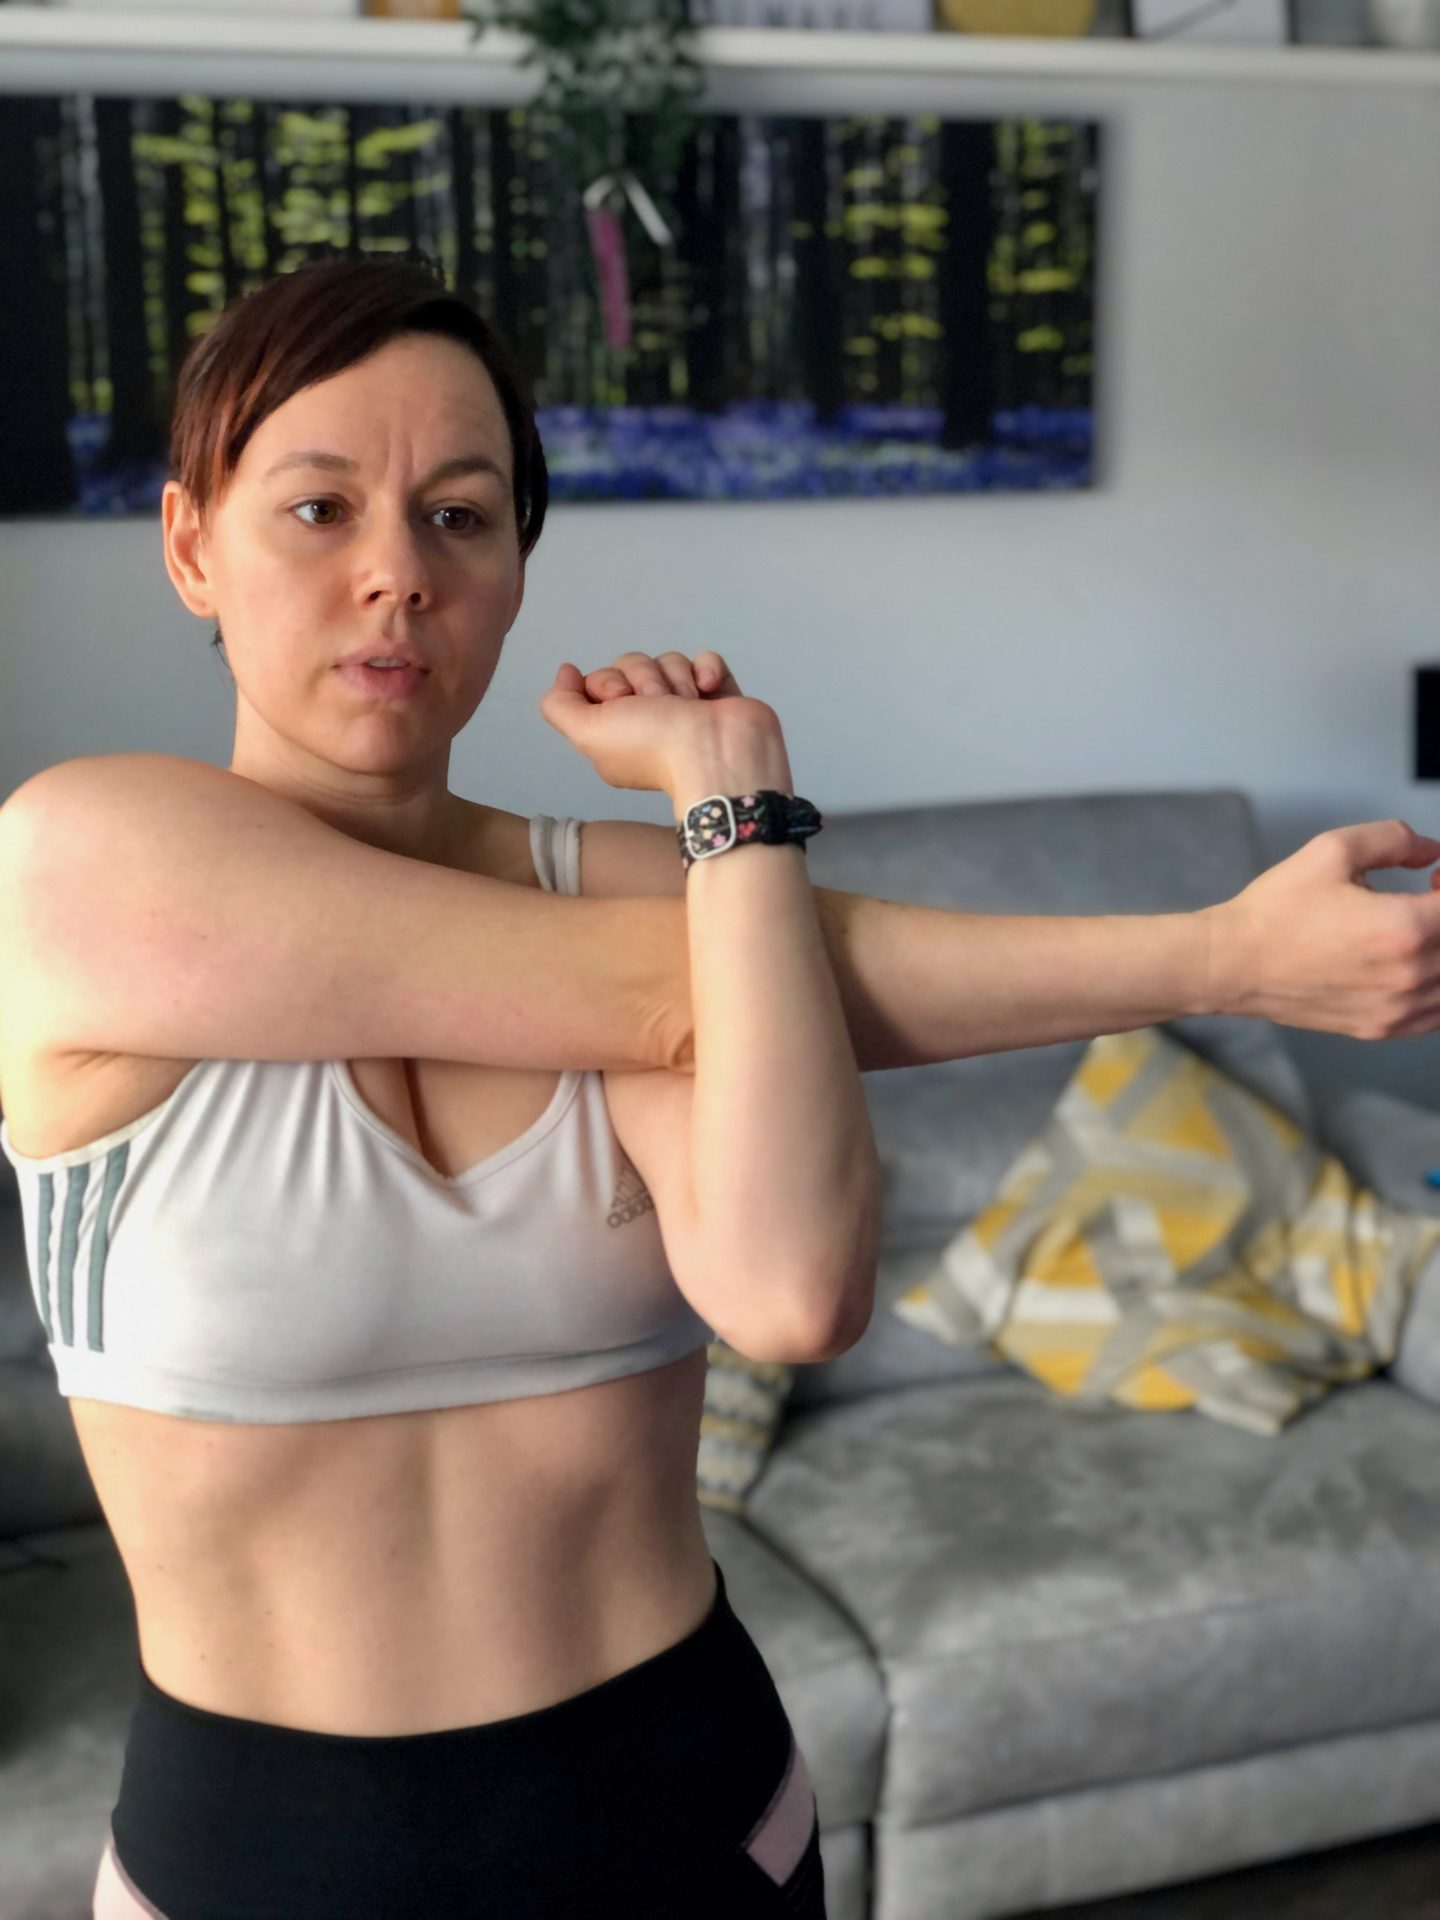 A woman wearing a sports bra stretches out her arm